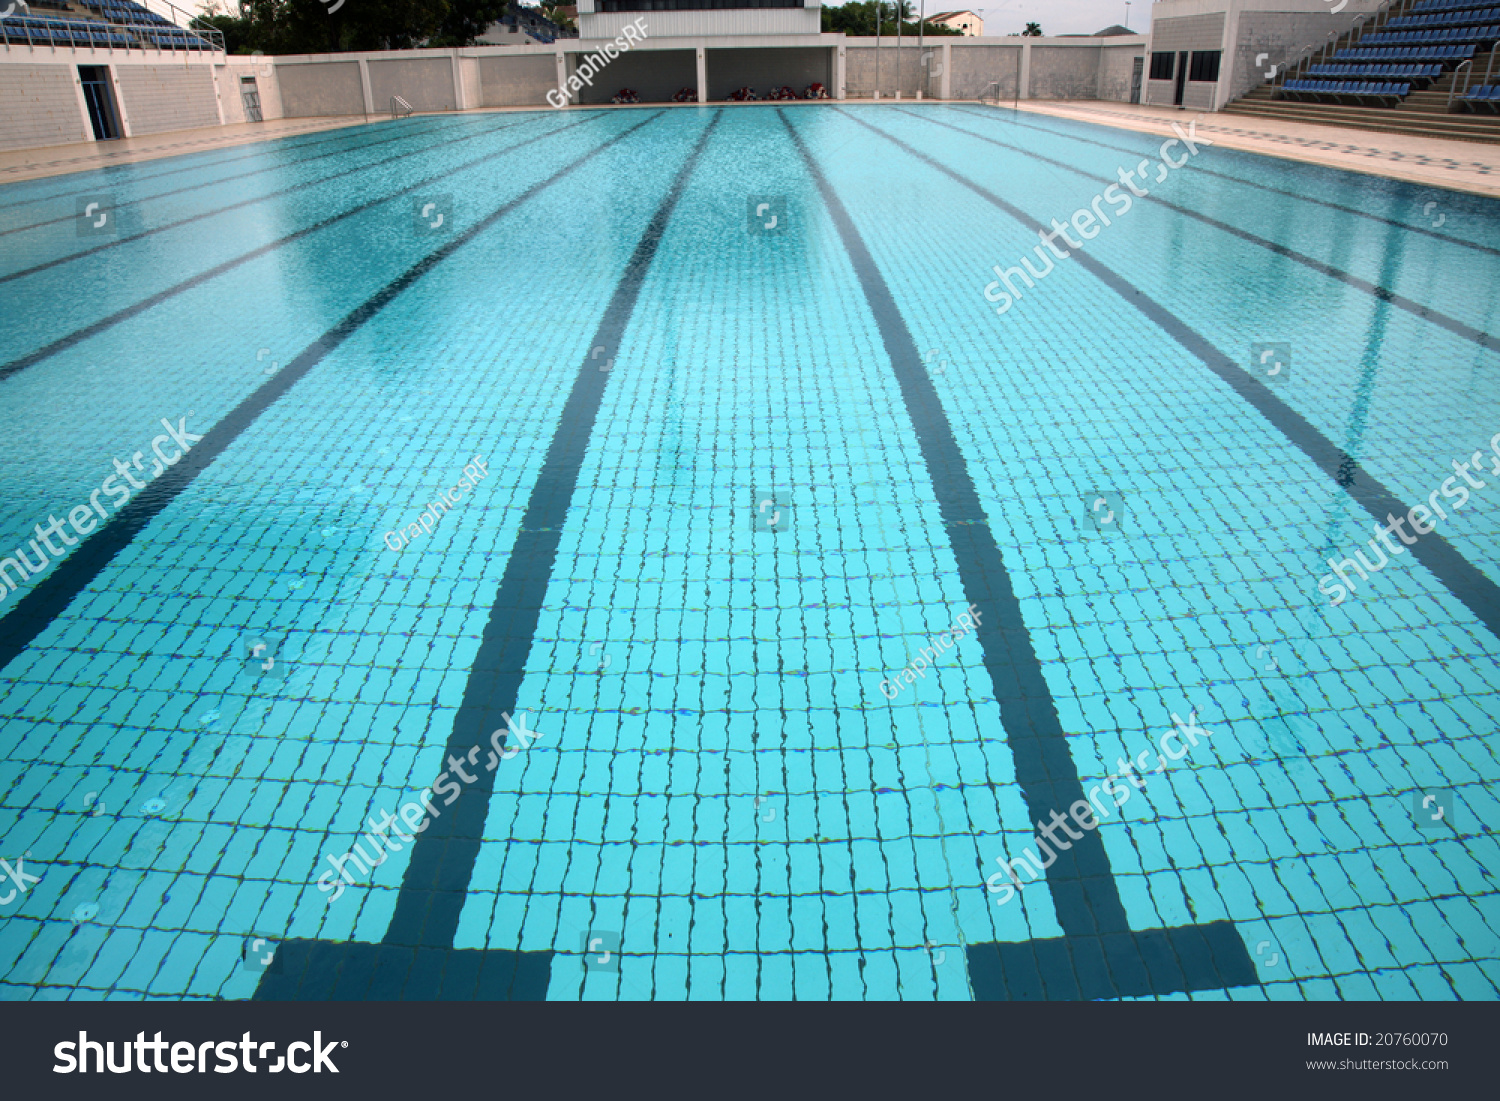 swimming pool with lane markings olympic size - Olympic Swimming Pool Lanes